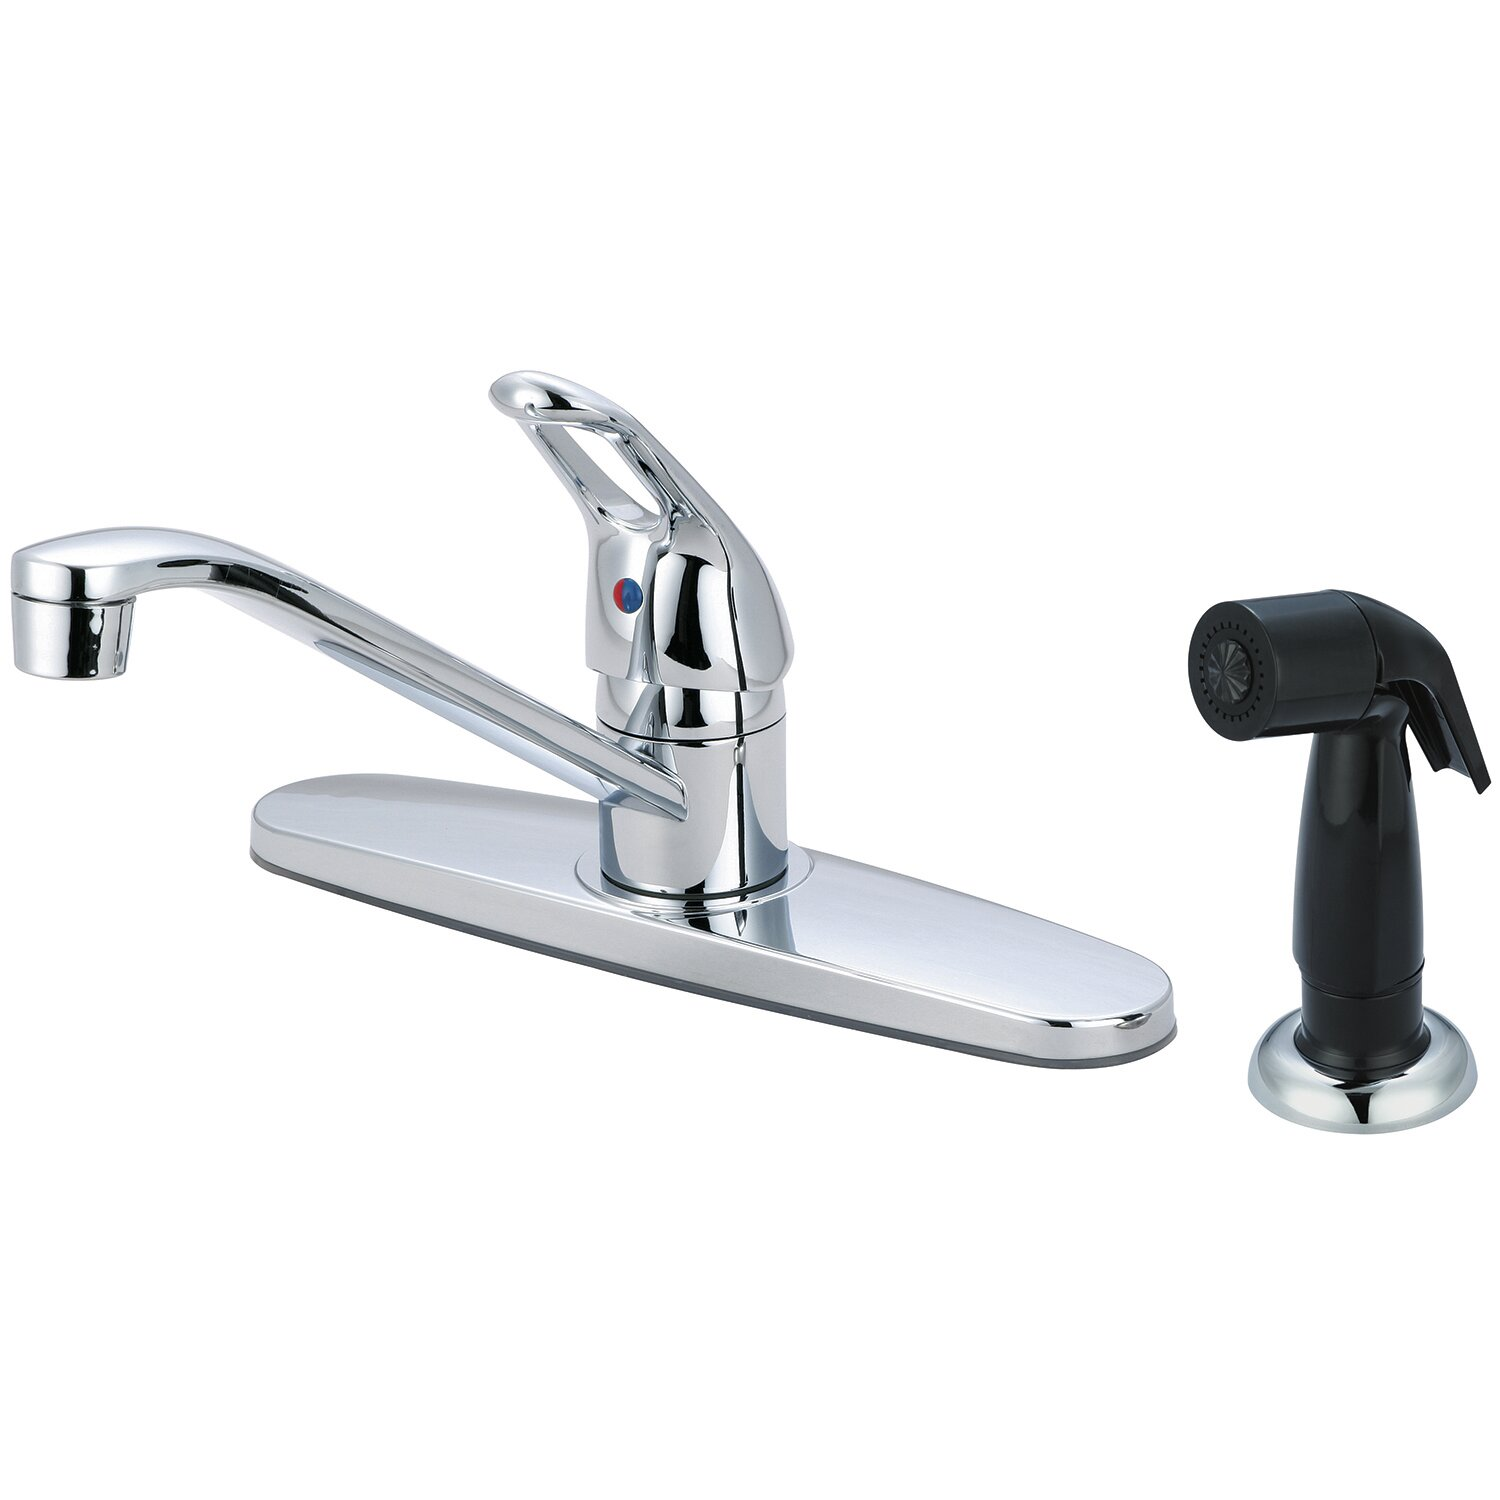 Olympia Faucets Single Handle Centerset Kitchen Faucet with Side Spray